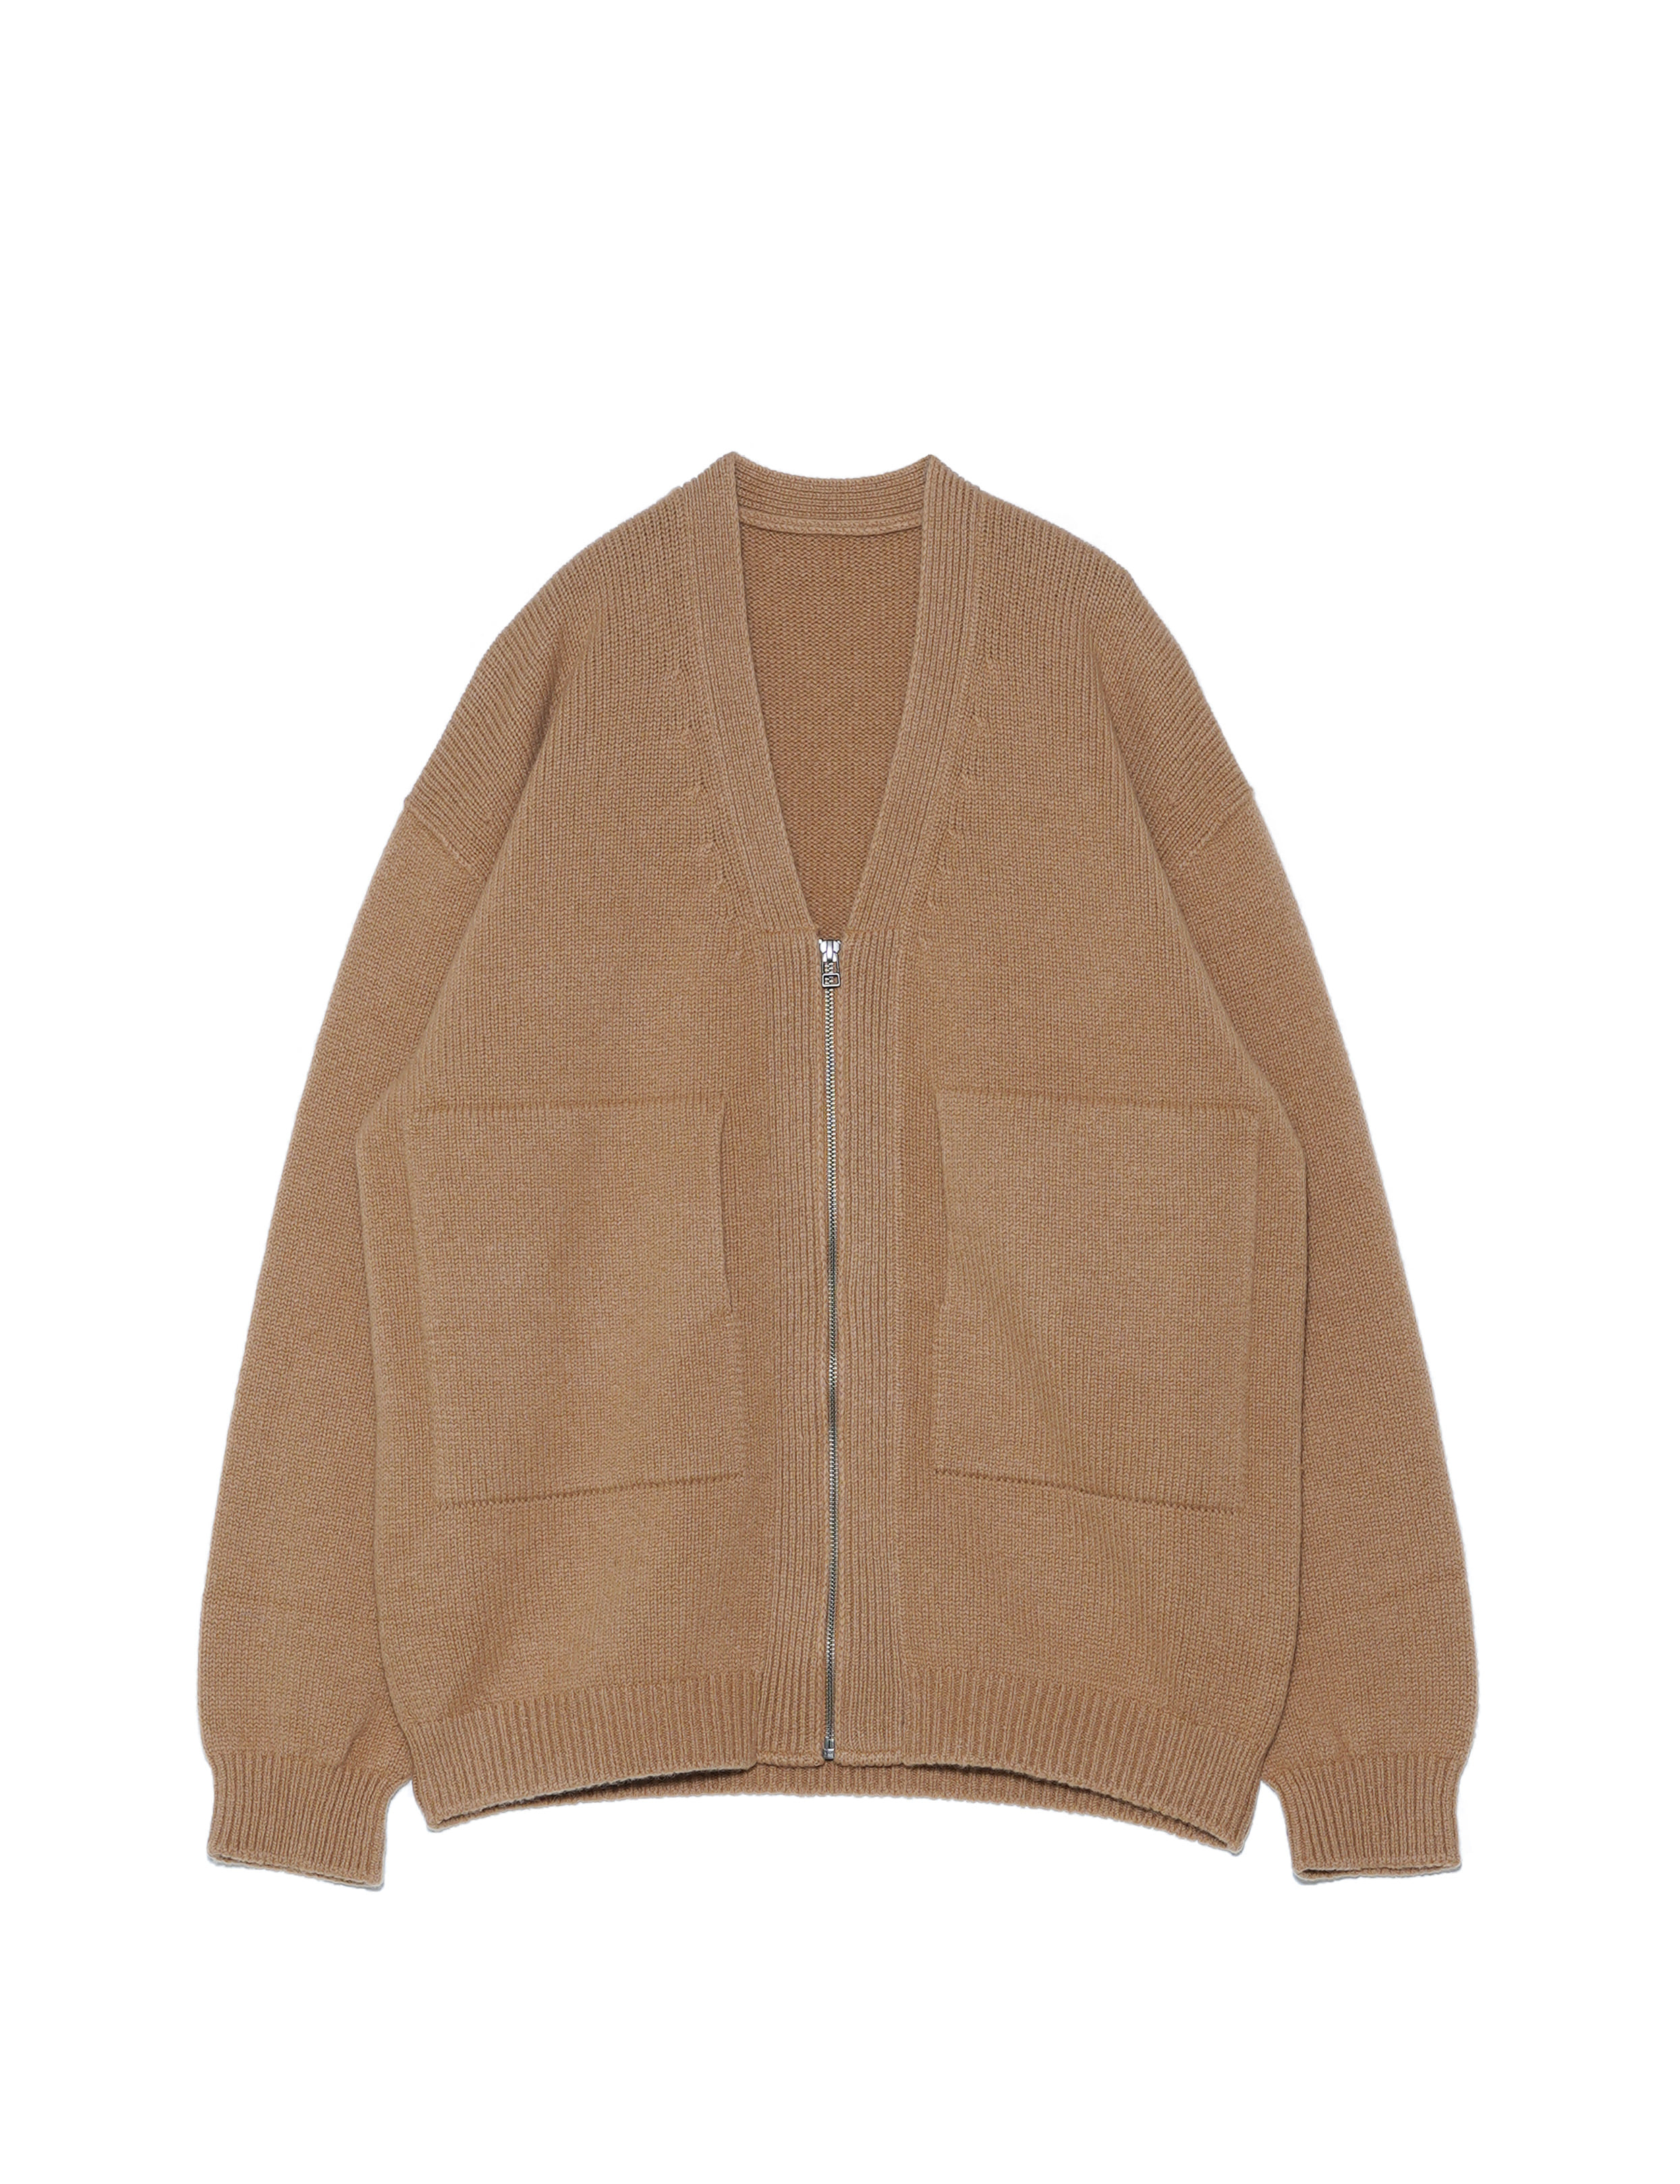 WHOLEGARMENT ZIP CARDIGAN (CAMEL)